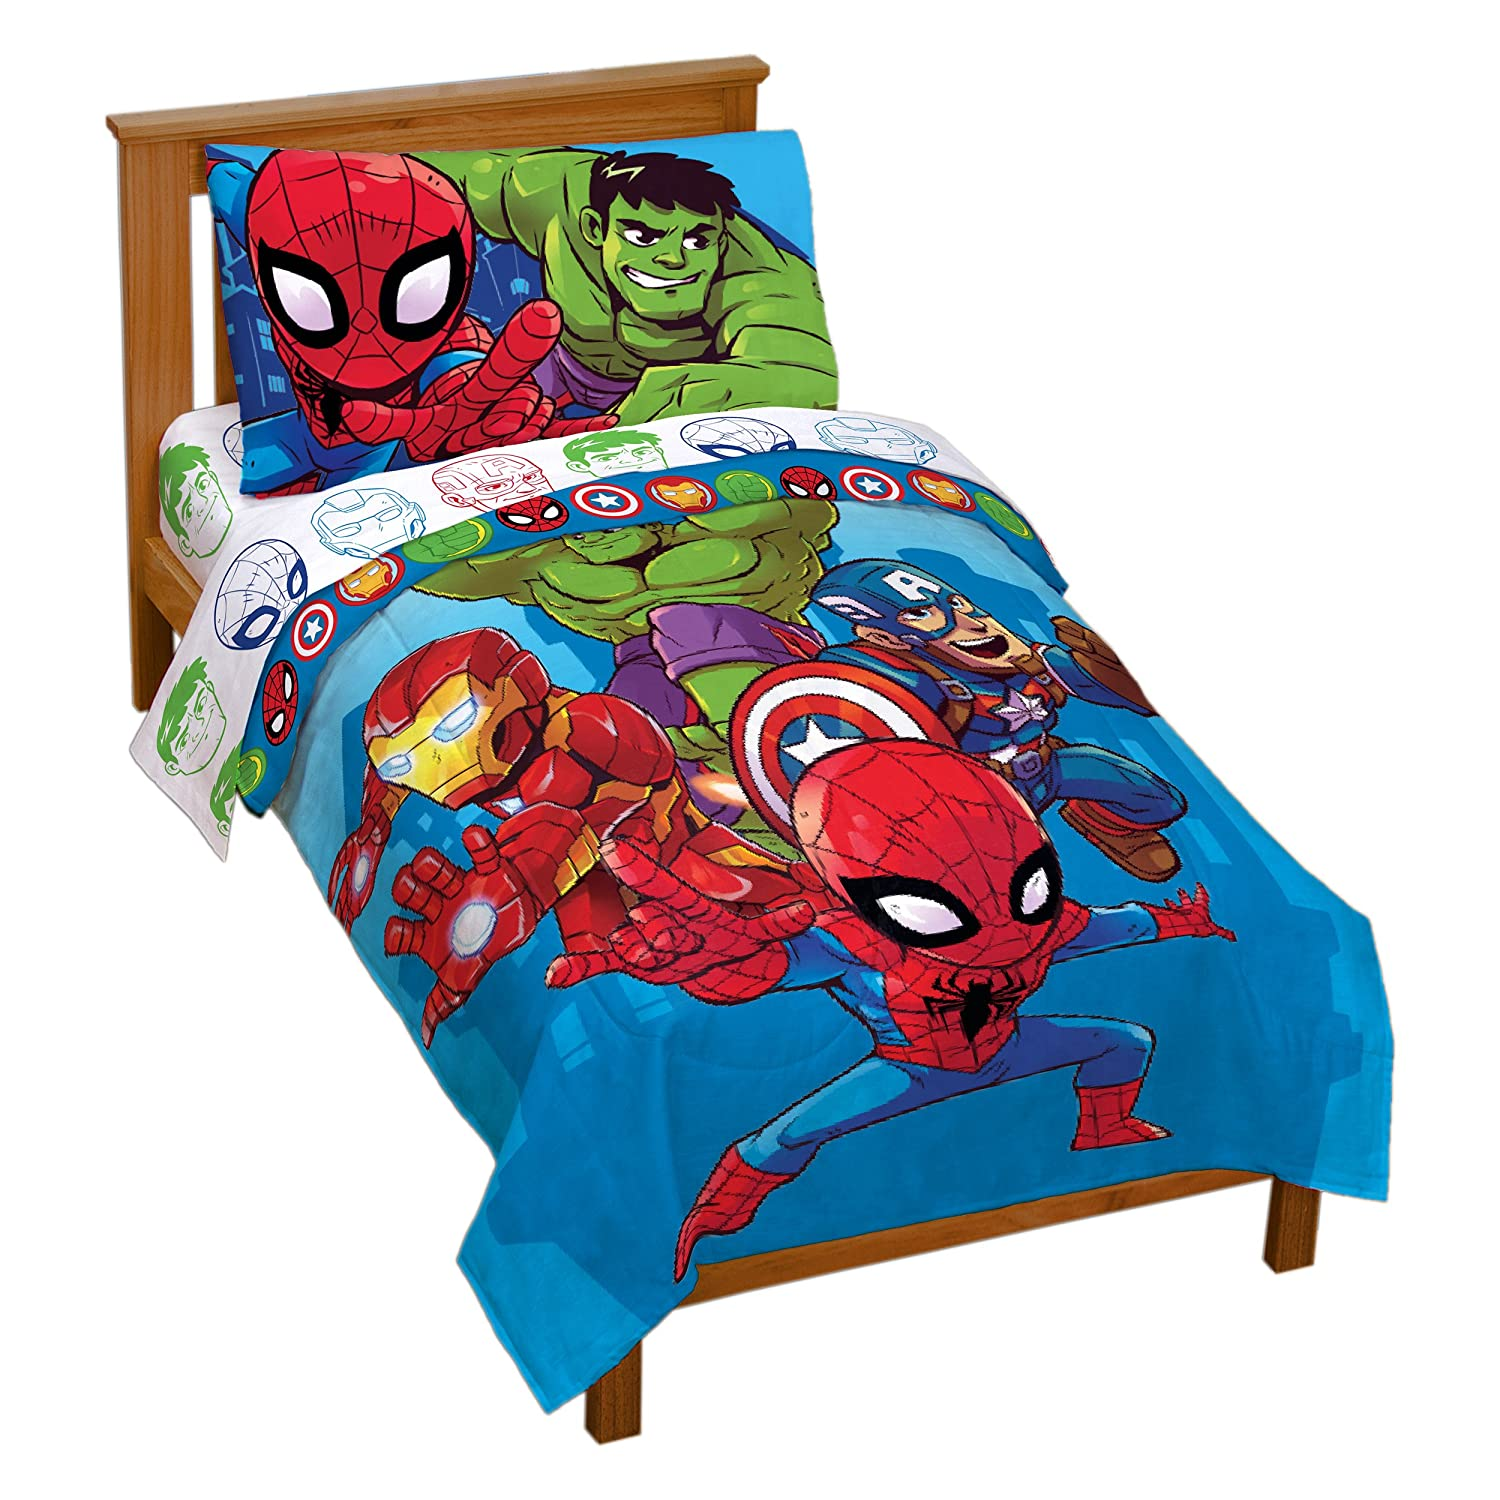 Jay Franco Marvel Avengers Heroes Amigos 4 Piece Toddler Bed Set – Super  Soft Microfiber Bed Set – Bedding Features Captain America, Hulk, Iron Man,  ...